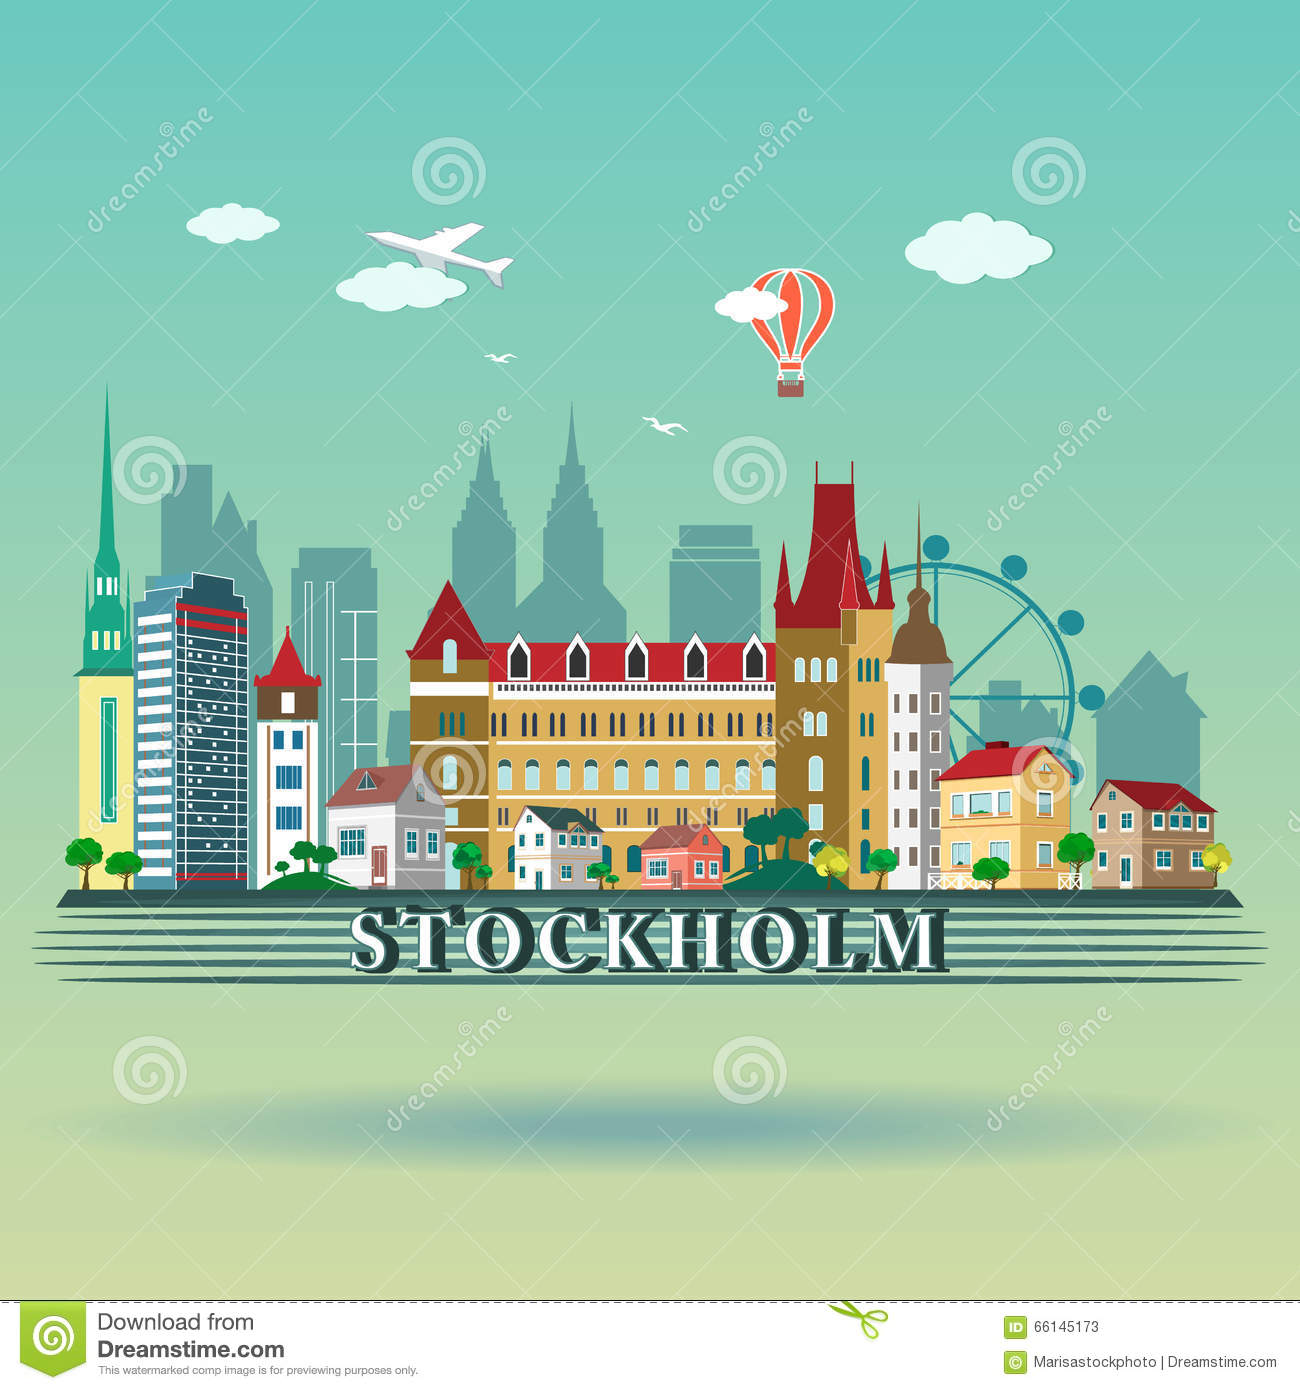 Stockholm Stock Illustrations.